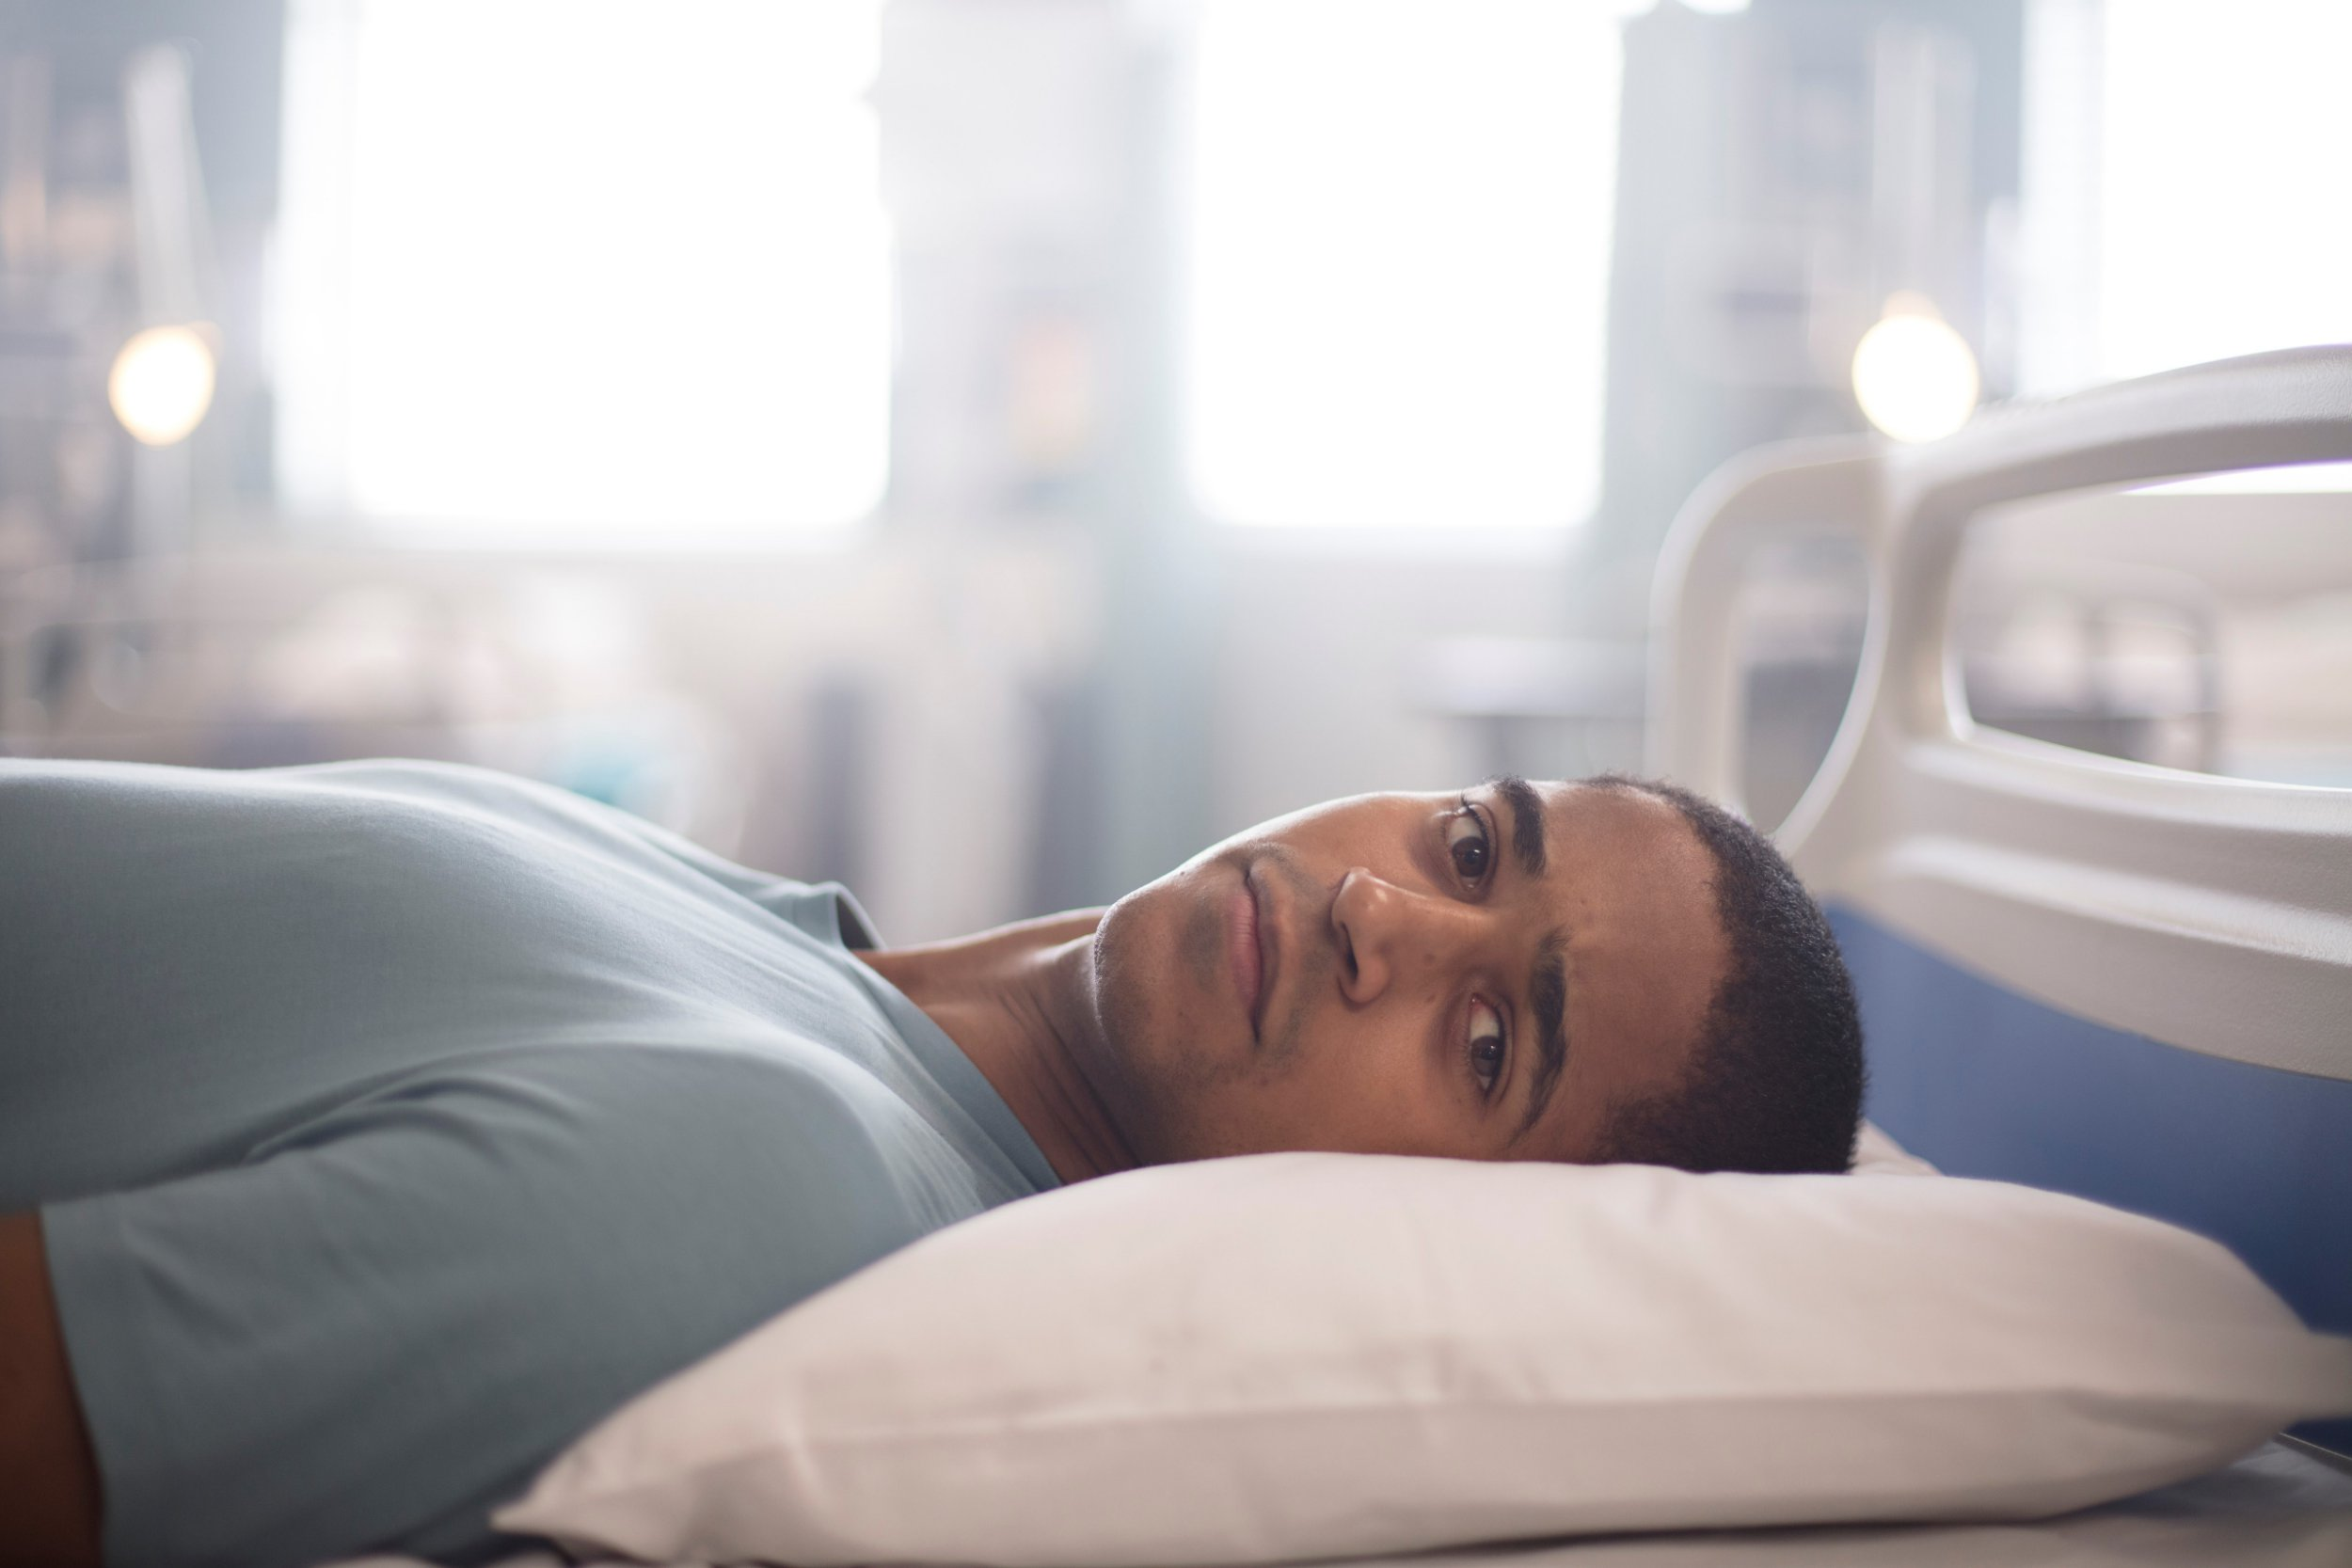 Trust Me's Alfred Enoch 'loved' filming gruesome scene – despite getting covered in friction burns